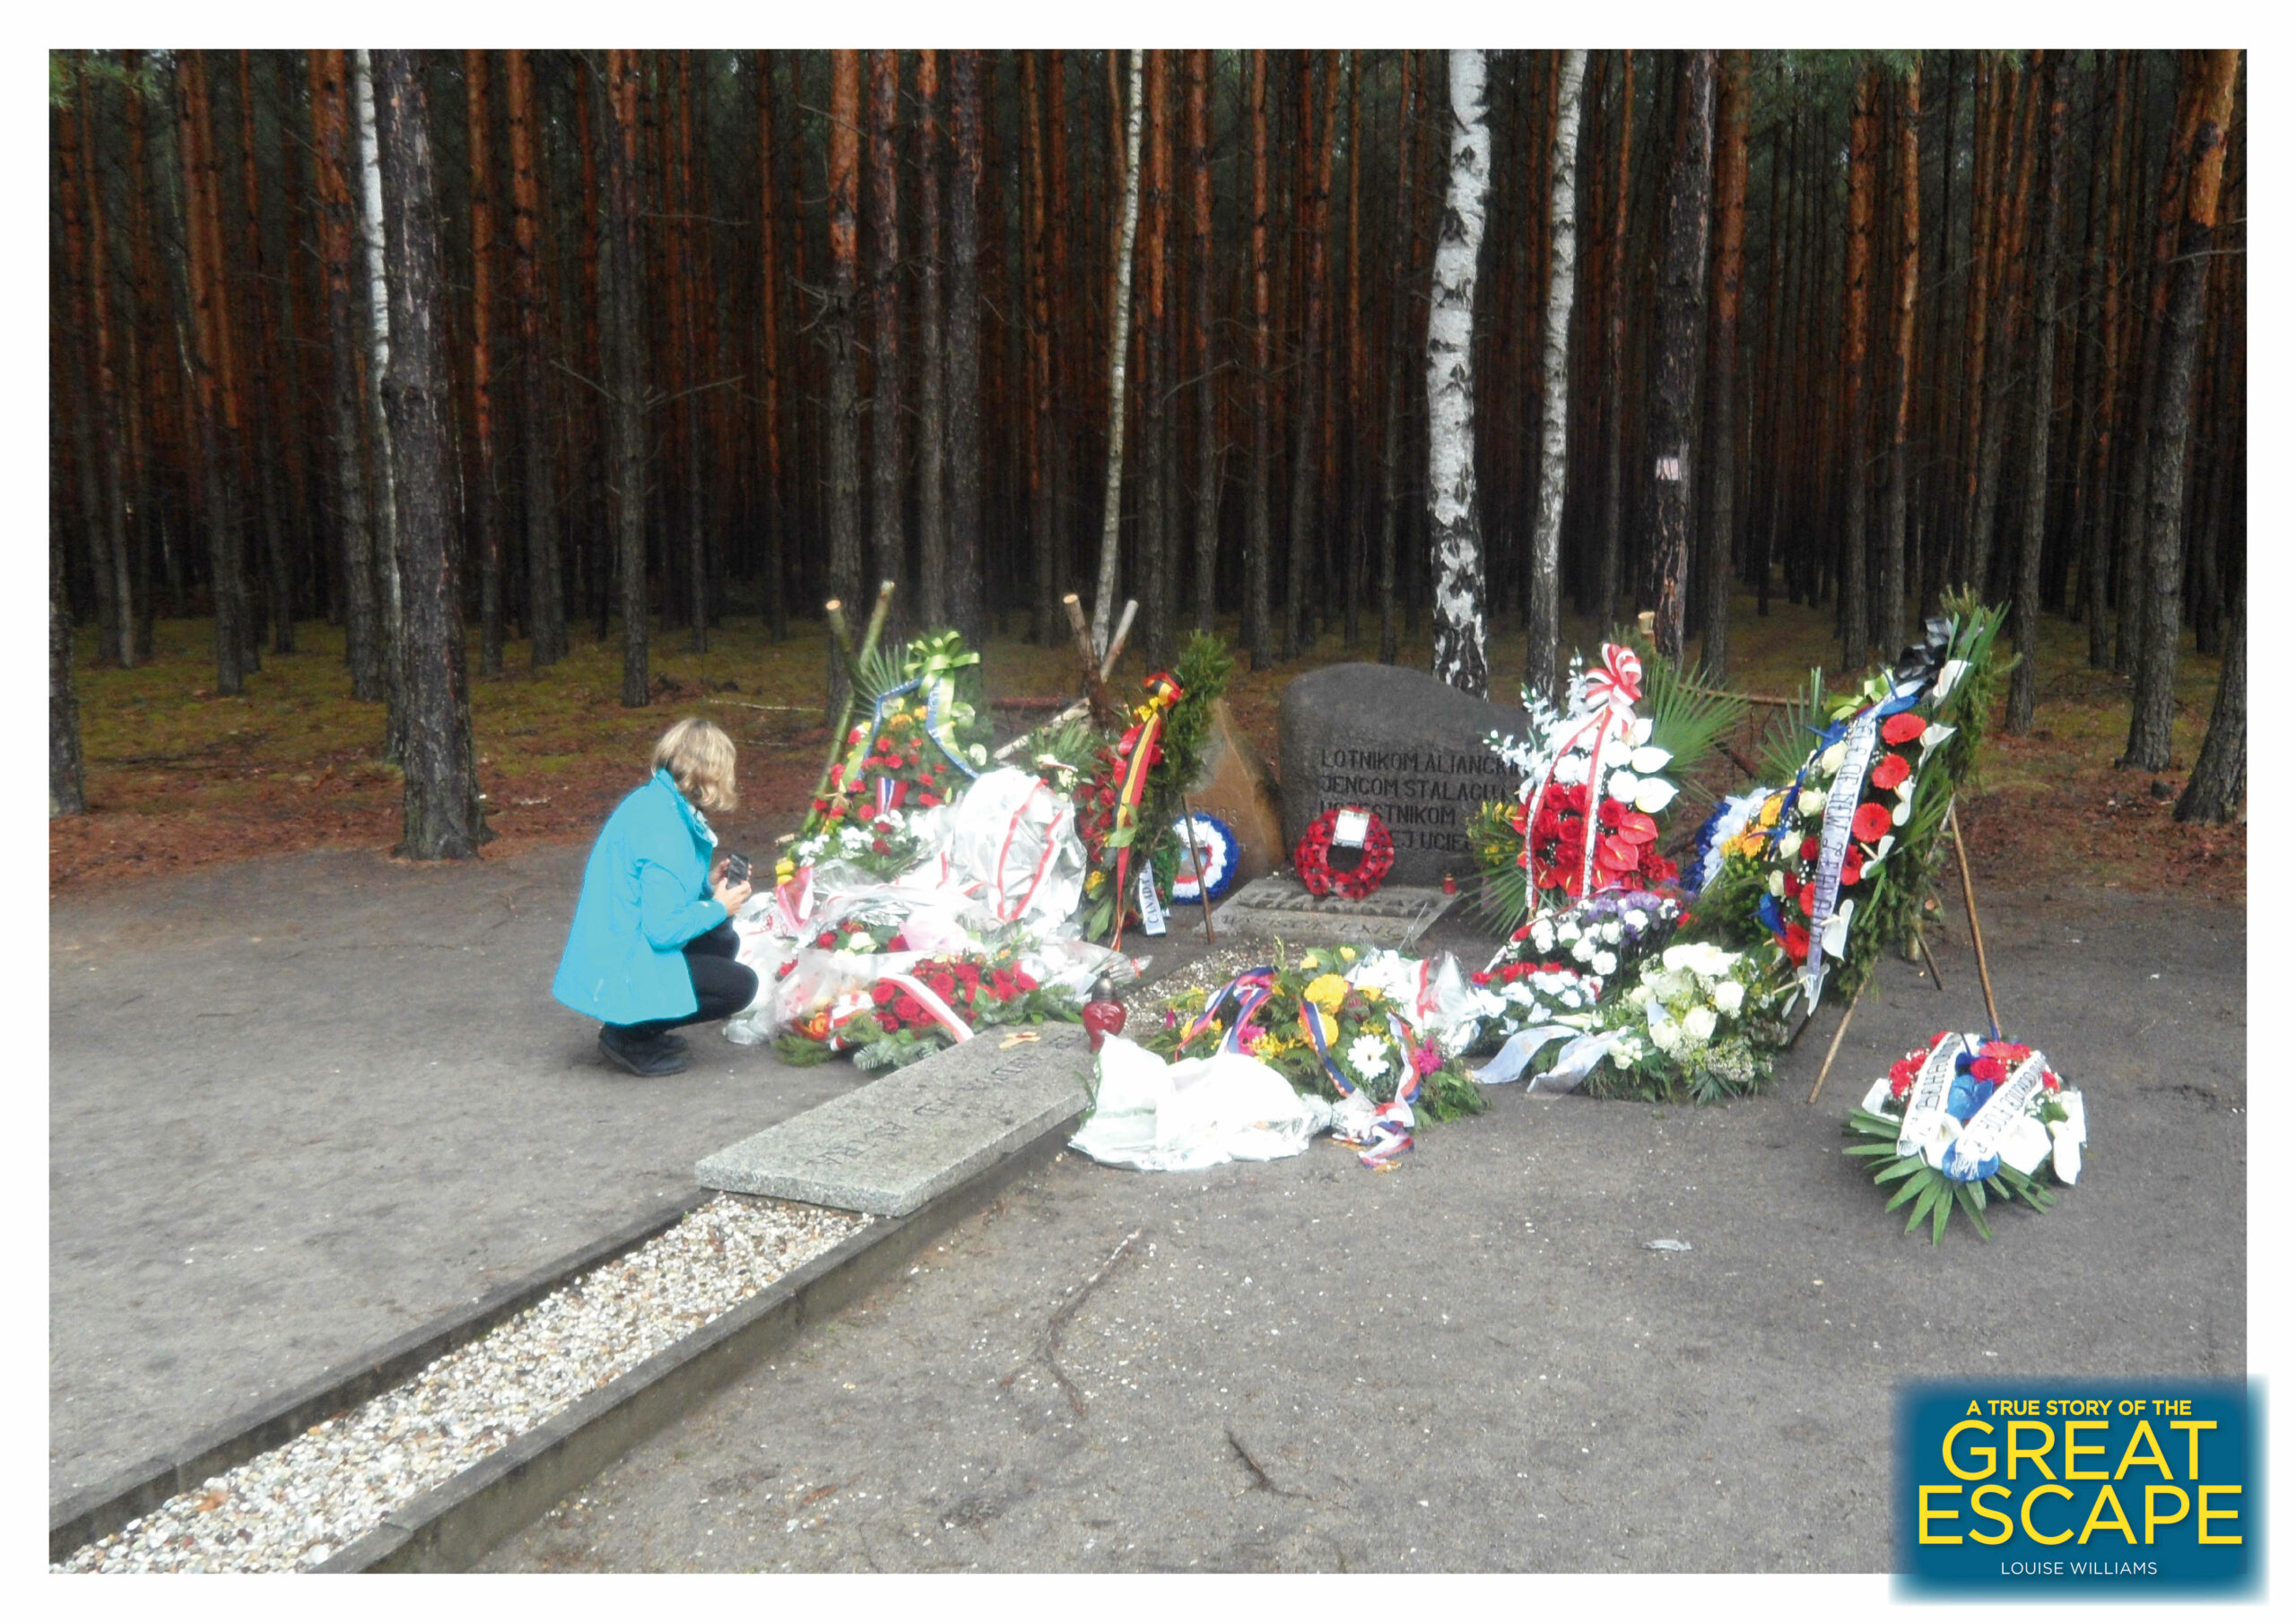 Floral tributes placed around a memorial